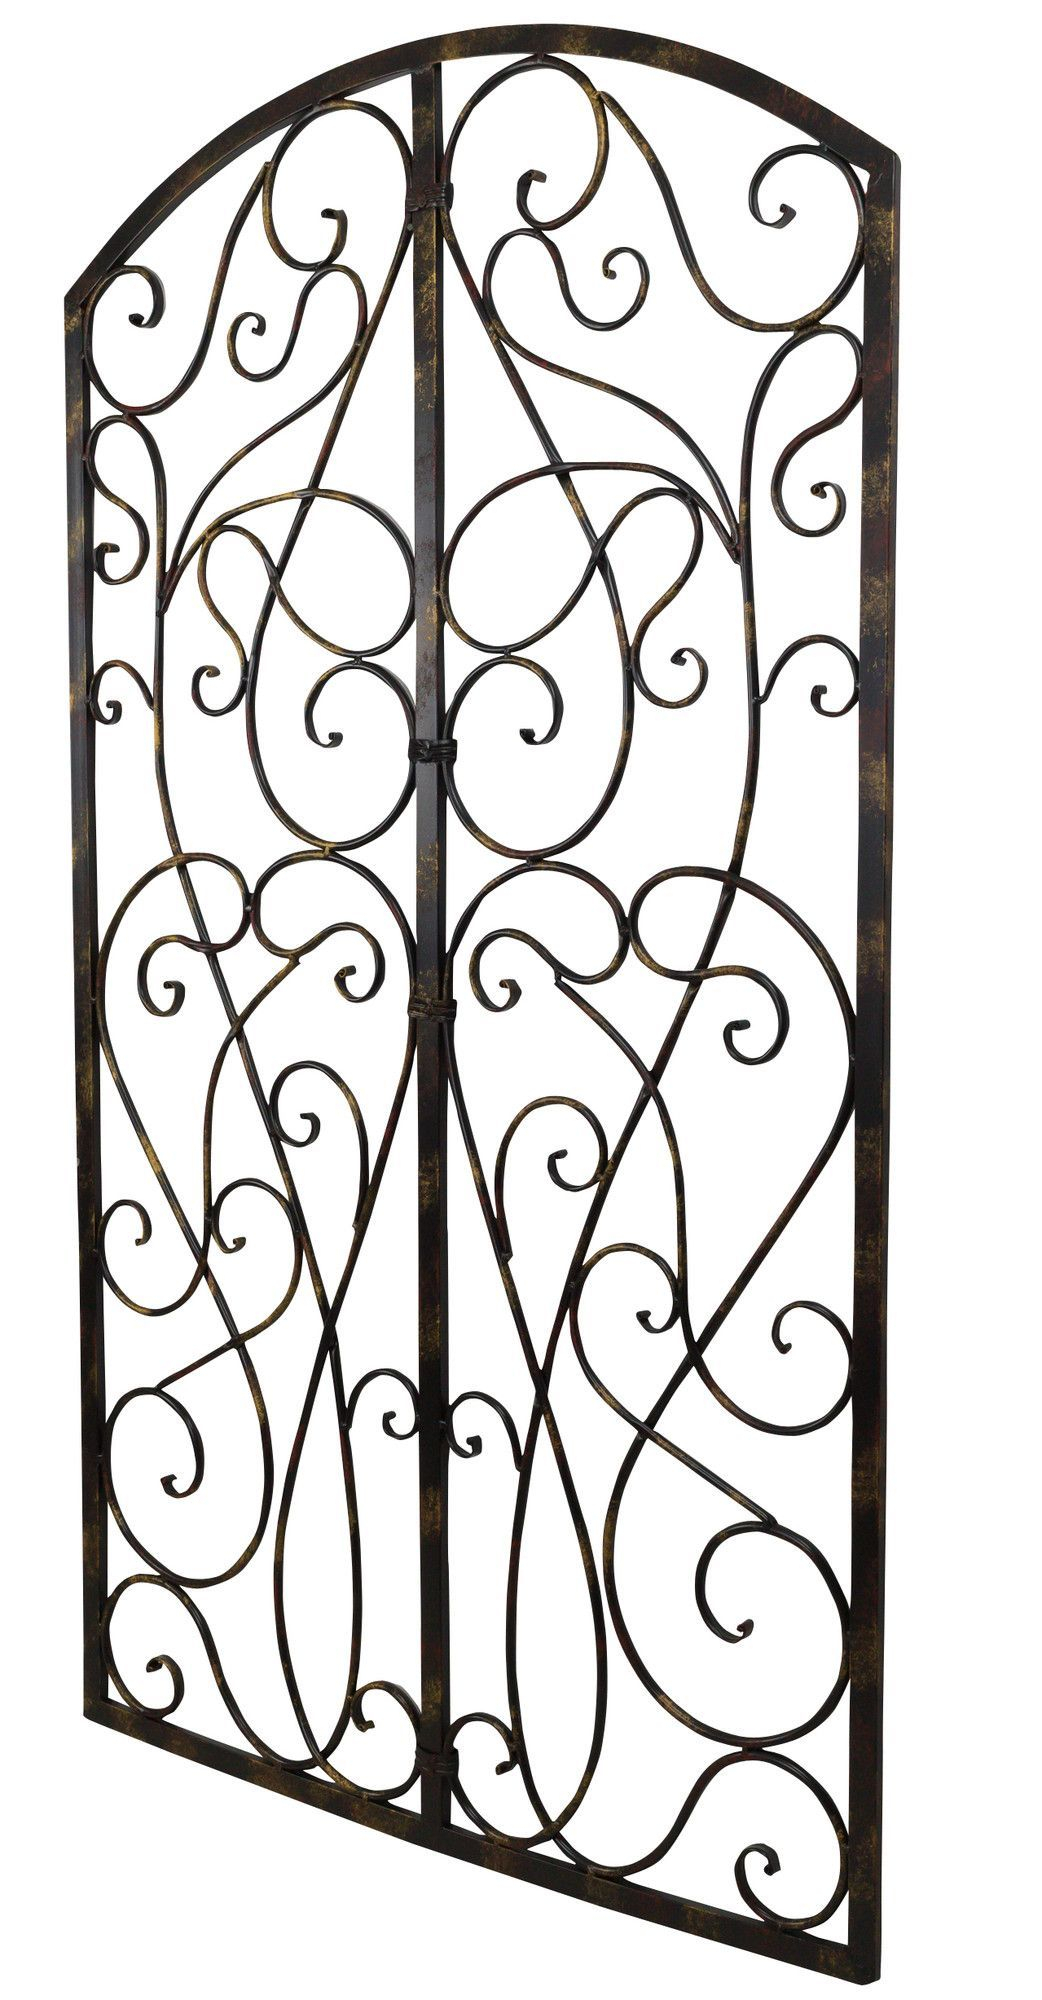 Wrought Iron Scroll Panel Wall Décor | Gates And Fences With Scroll Panel Wall Decor (View 3 of 30)